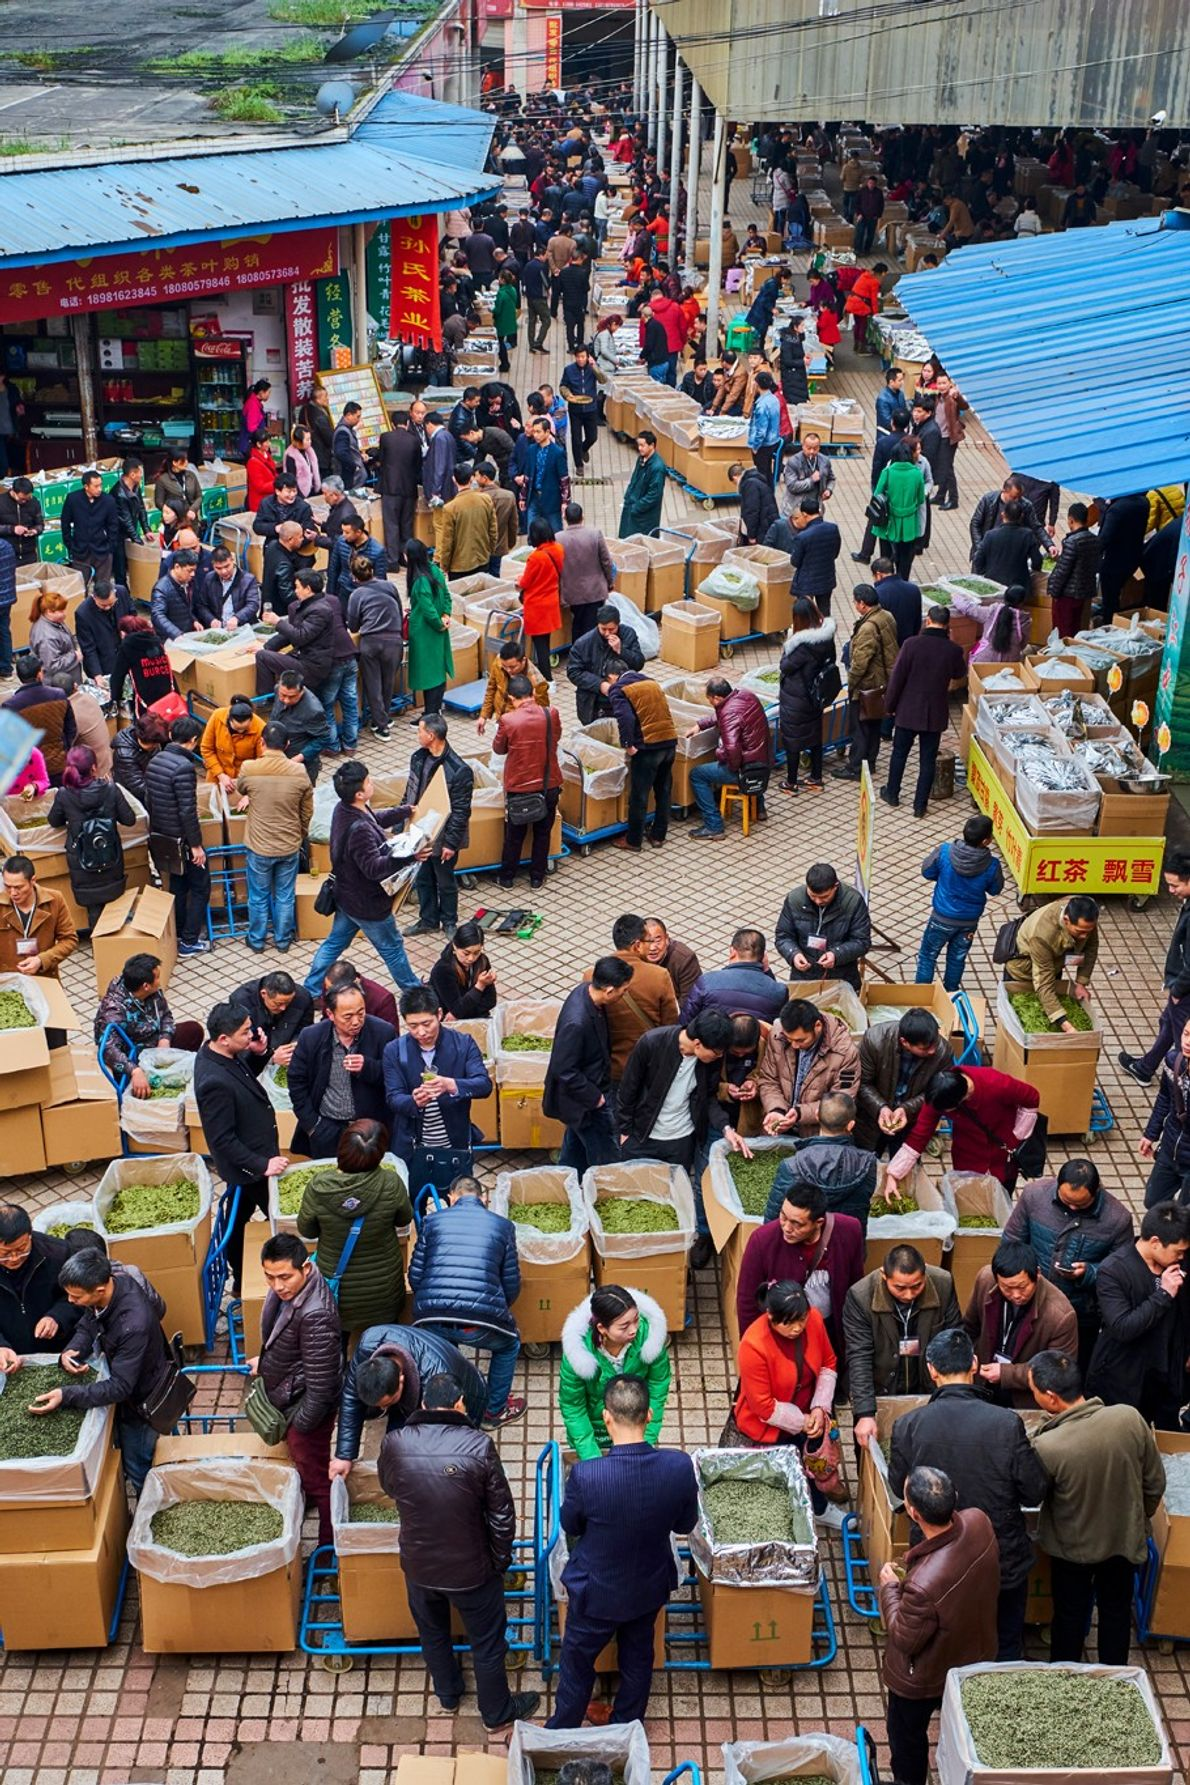 Buyers and sellers mingle at the wholesale green tea market in Mingshan, Sichuan.